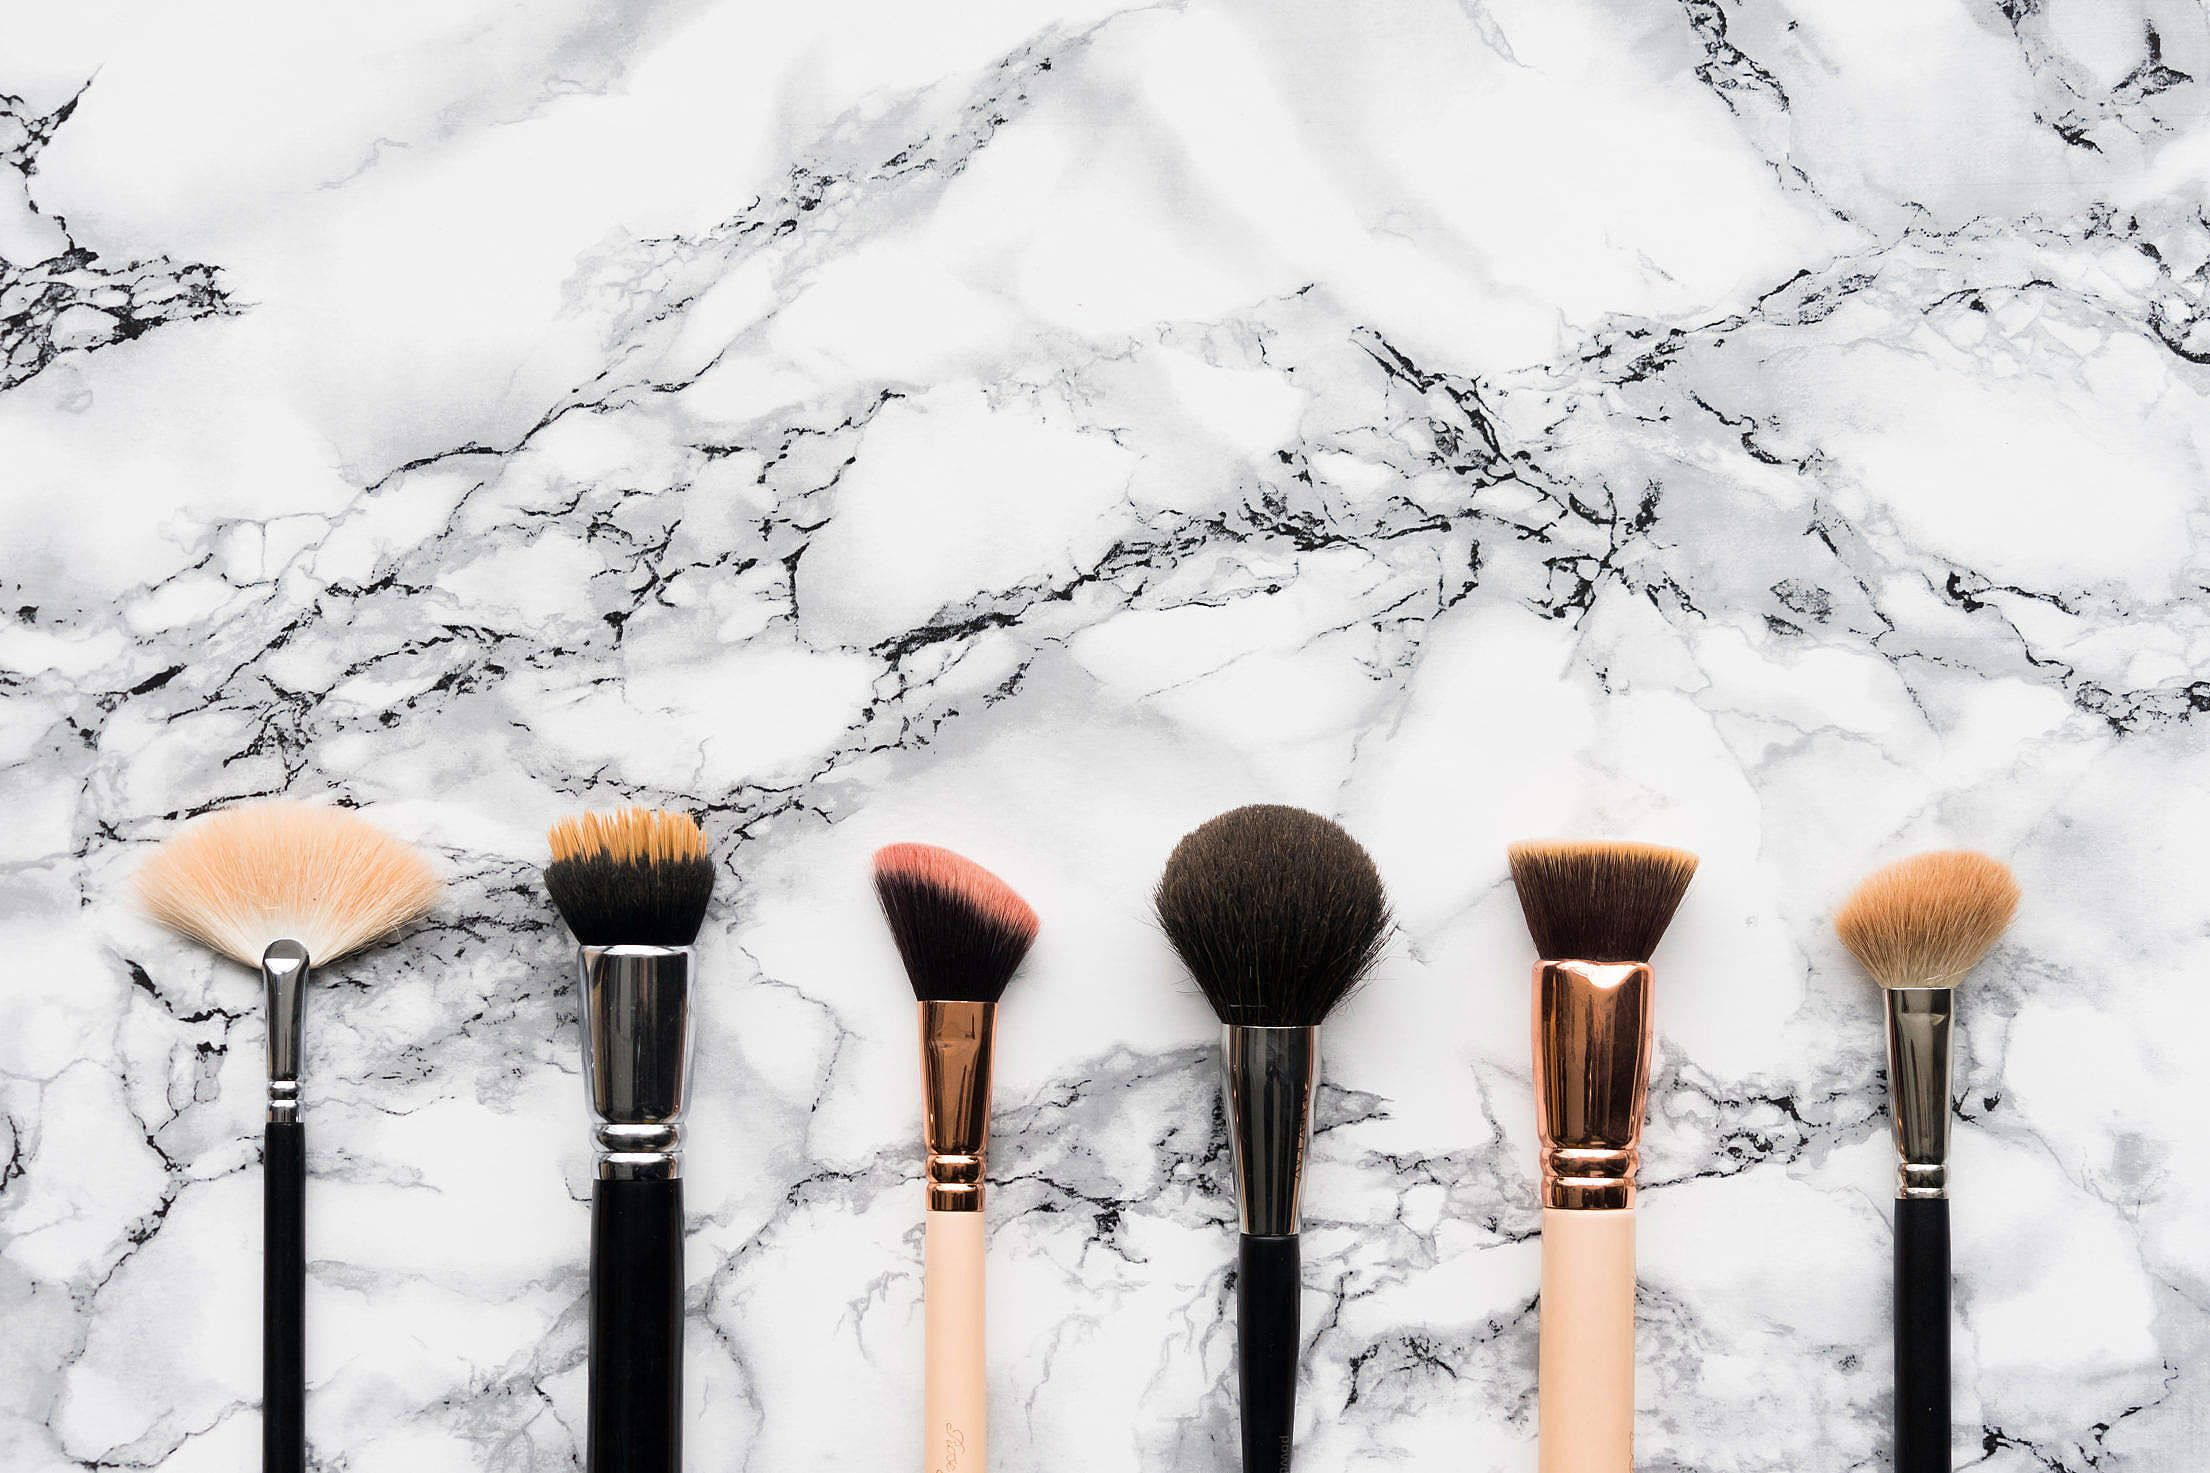 (click to download) Makeup Brushes on White Marble